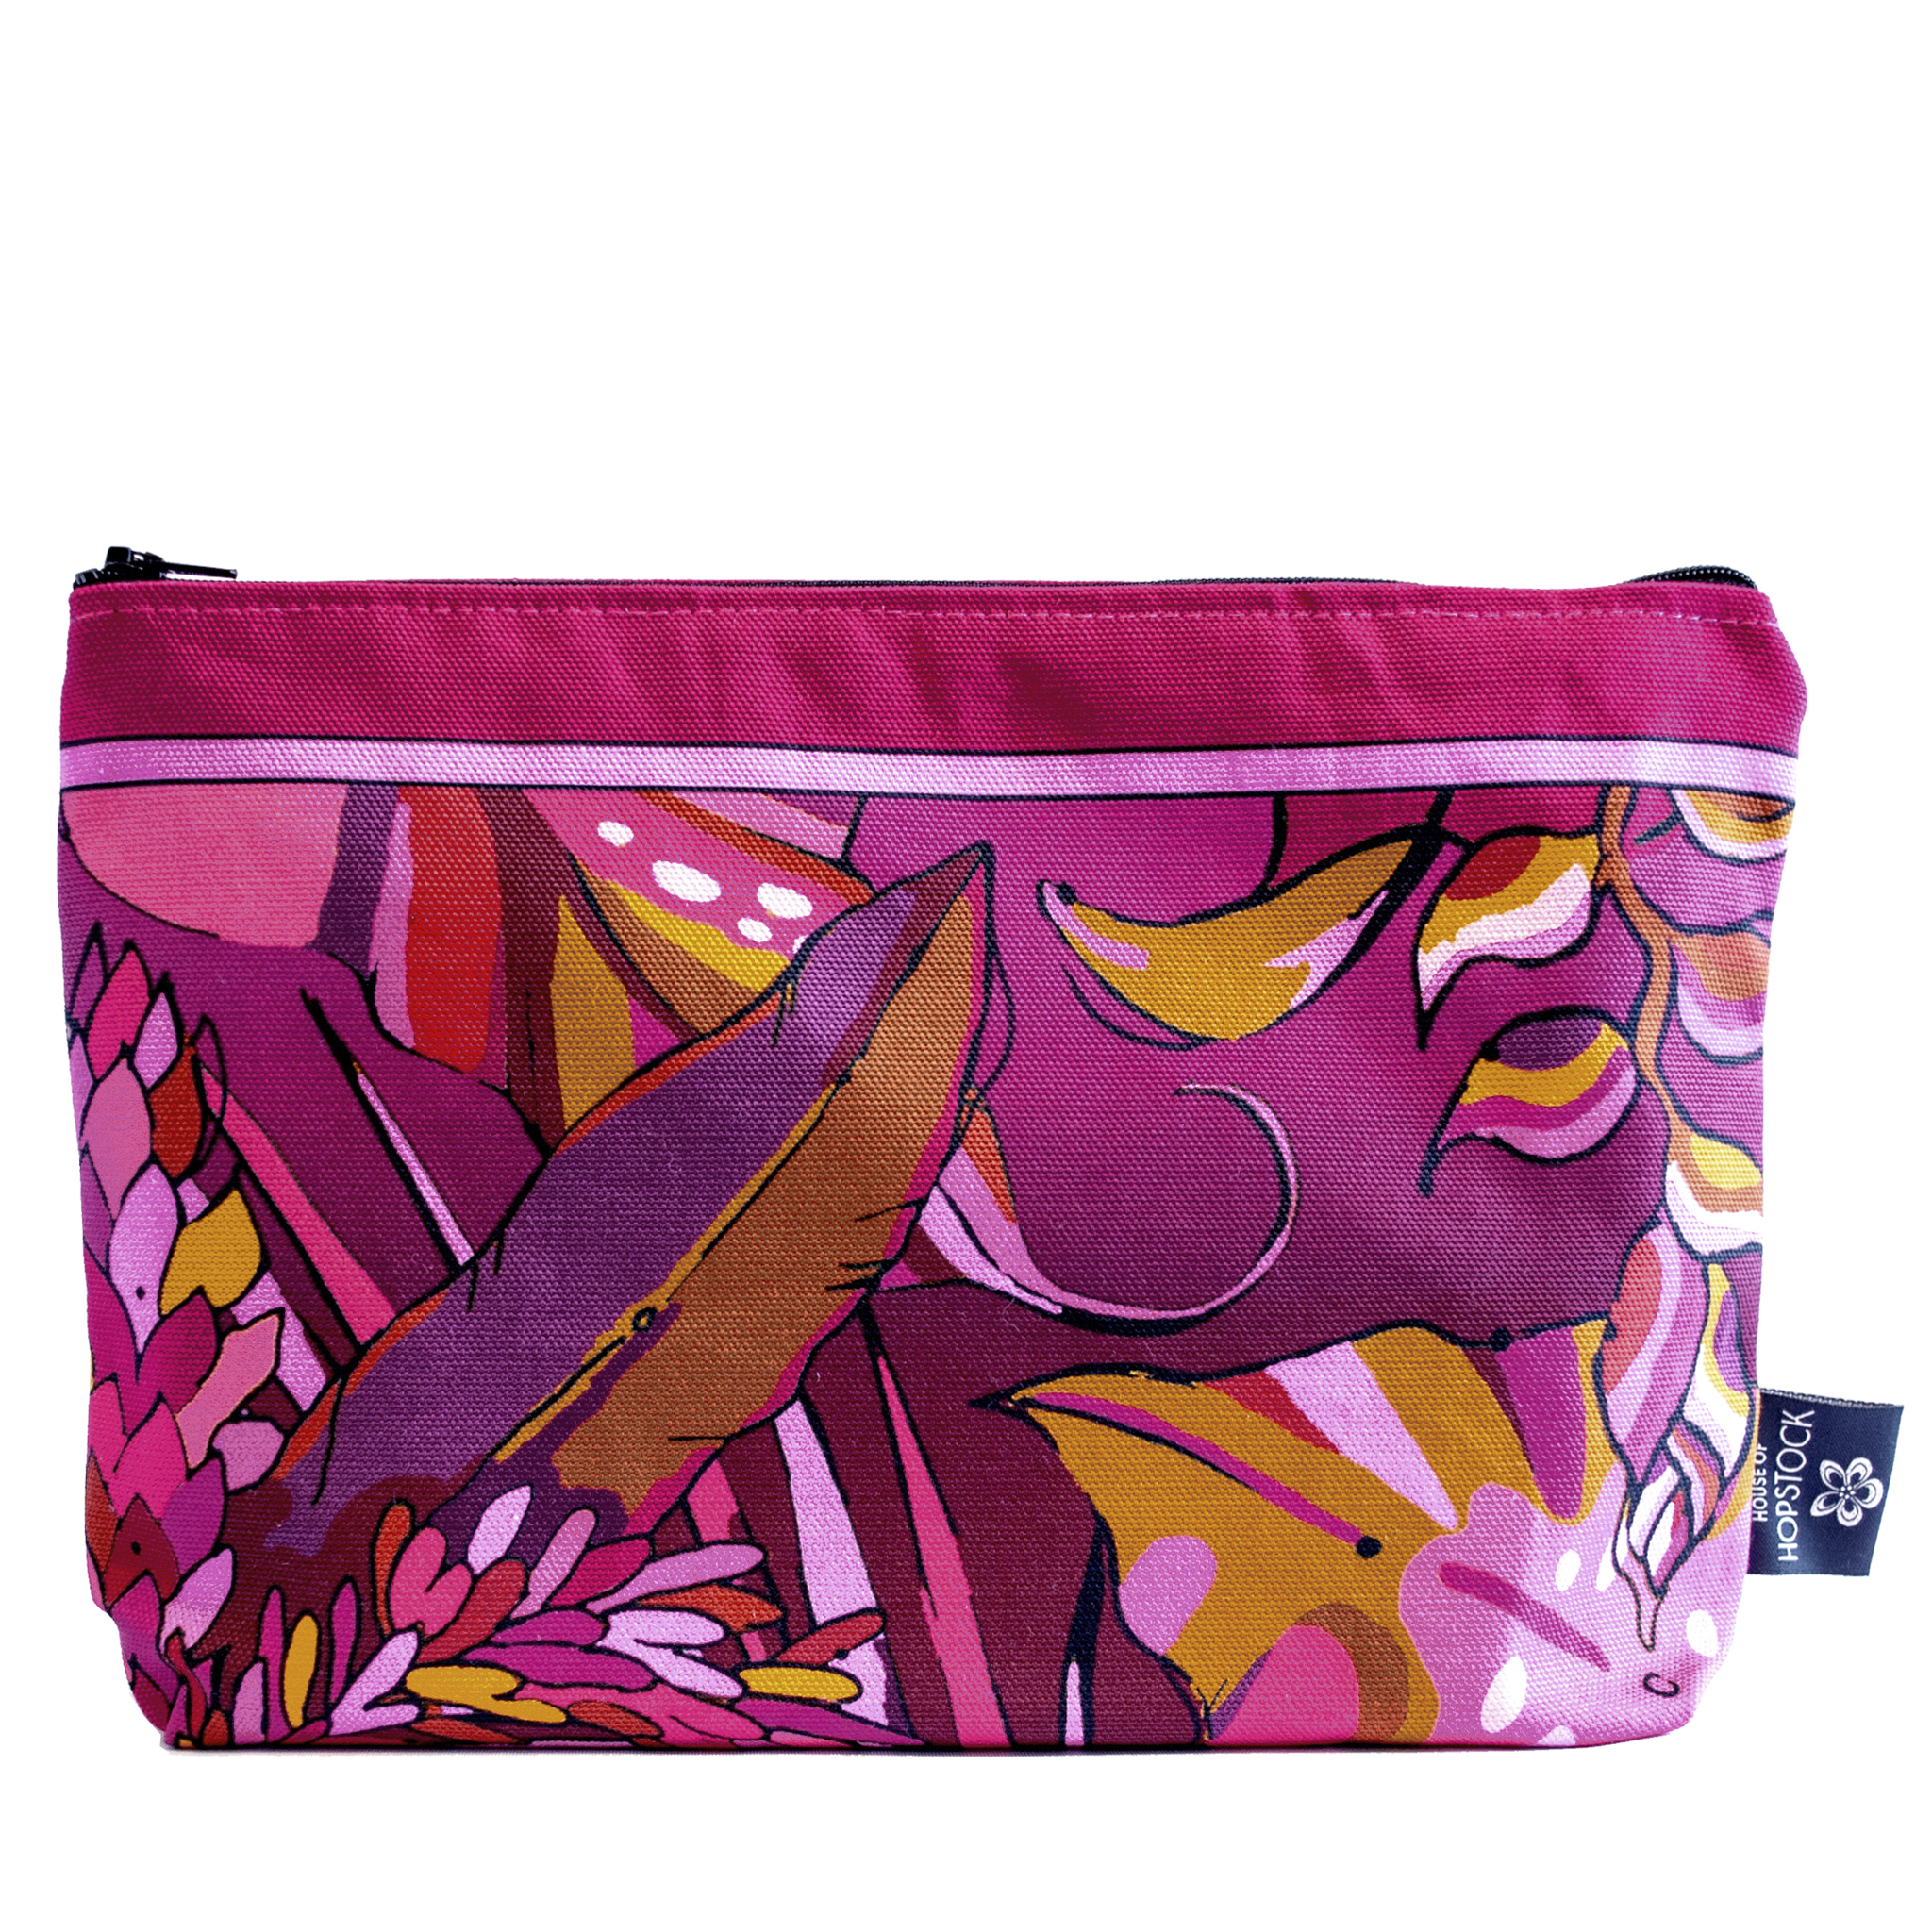 pink and red tropical palm print makeup bag cosmetics pouch